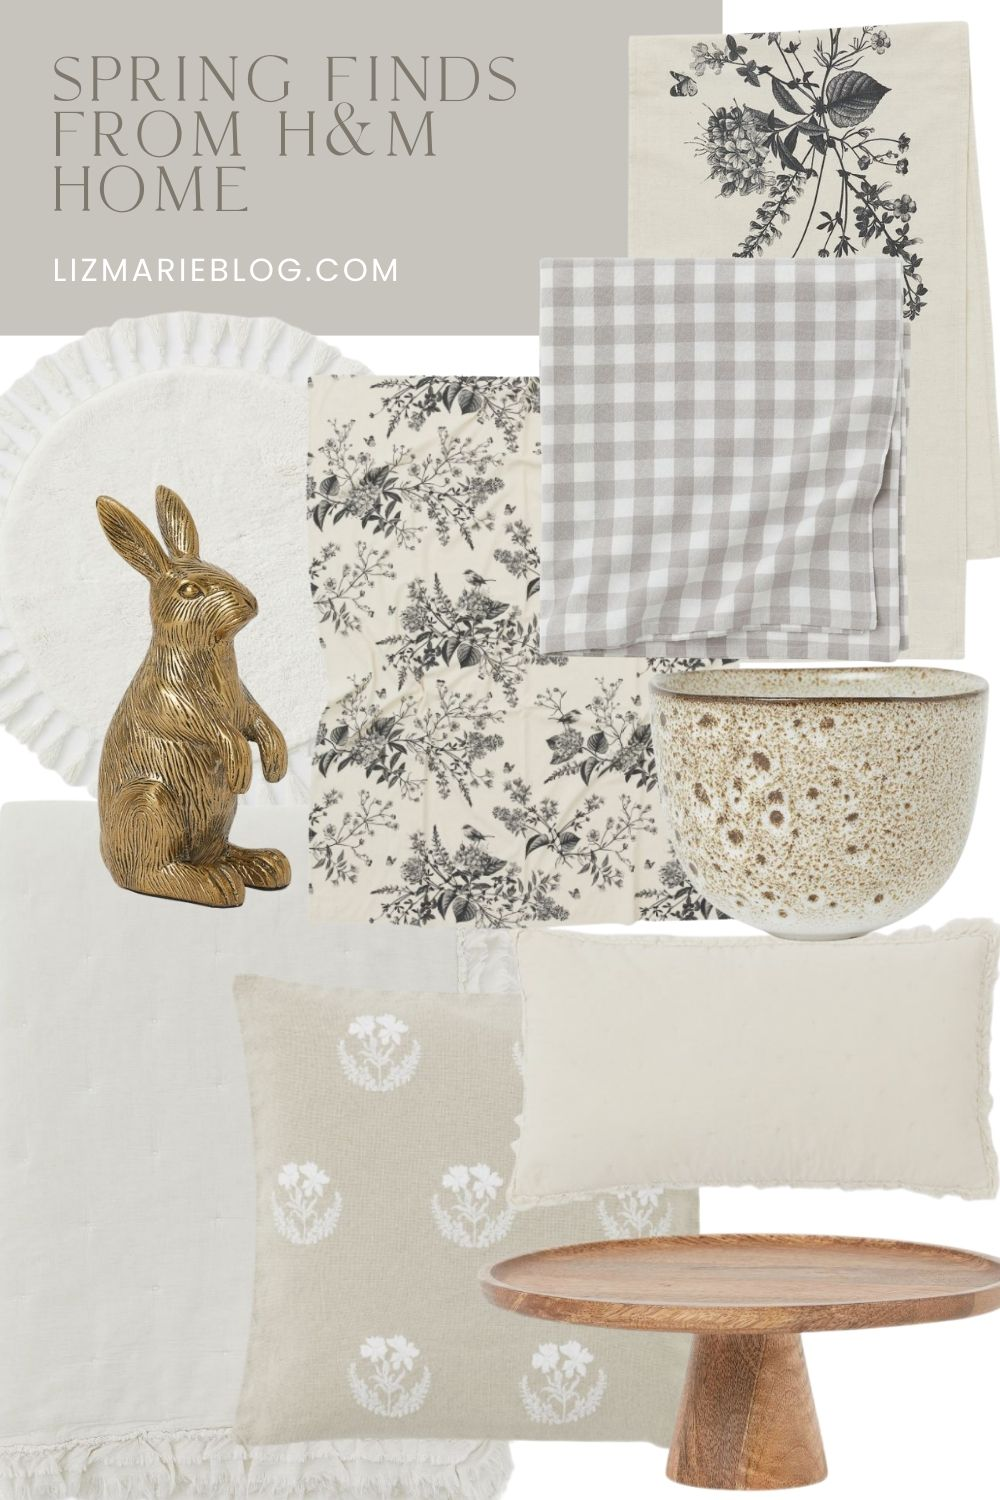 New Spring Finds from H&M Home